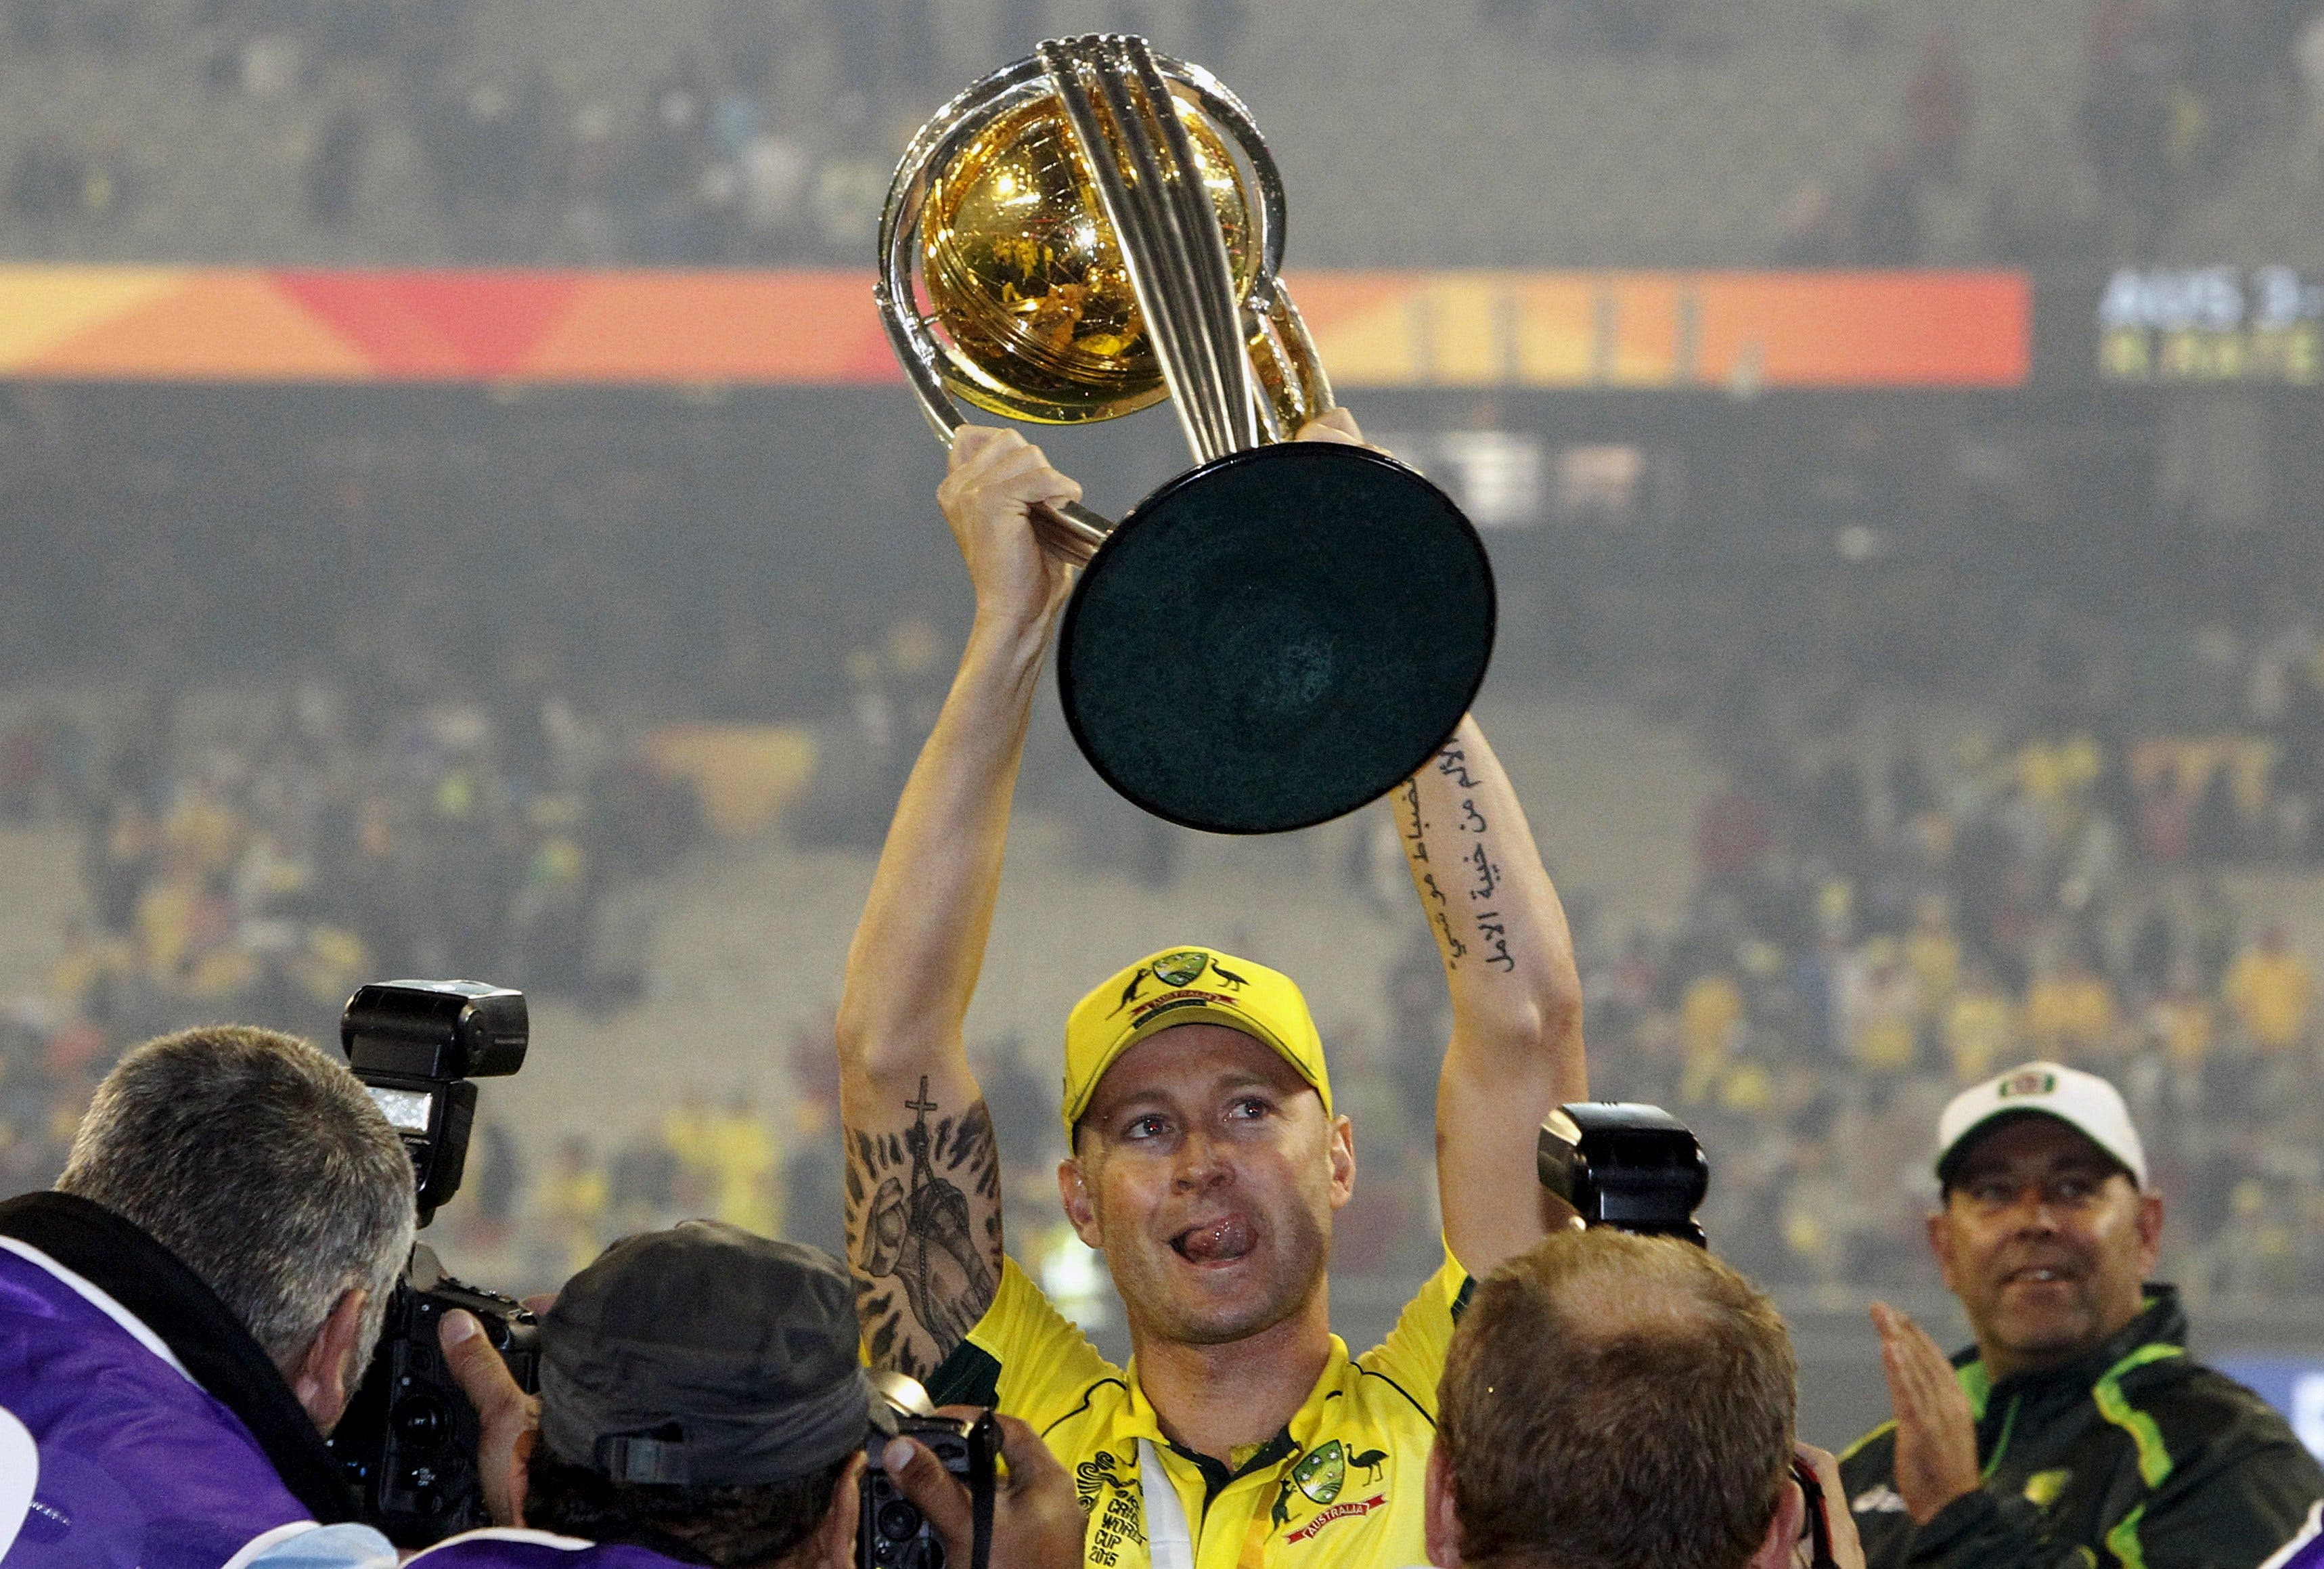 Australia's captain Michael Clarke (C) holds the Cricket World Cup trophy as he celebrates after they defeated New Zealand in the final match at the Melbourne Cricket Ground (MCG) March 29, 2015. REUTERS/Brandon Malone